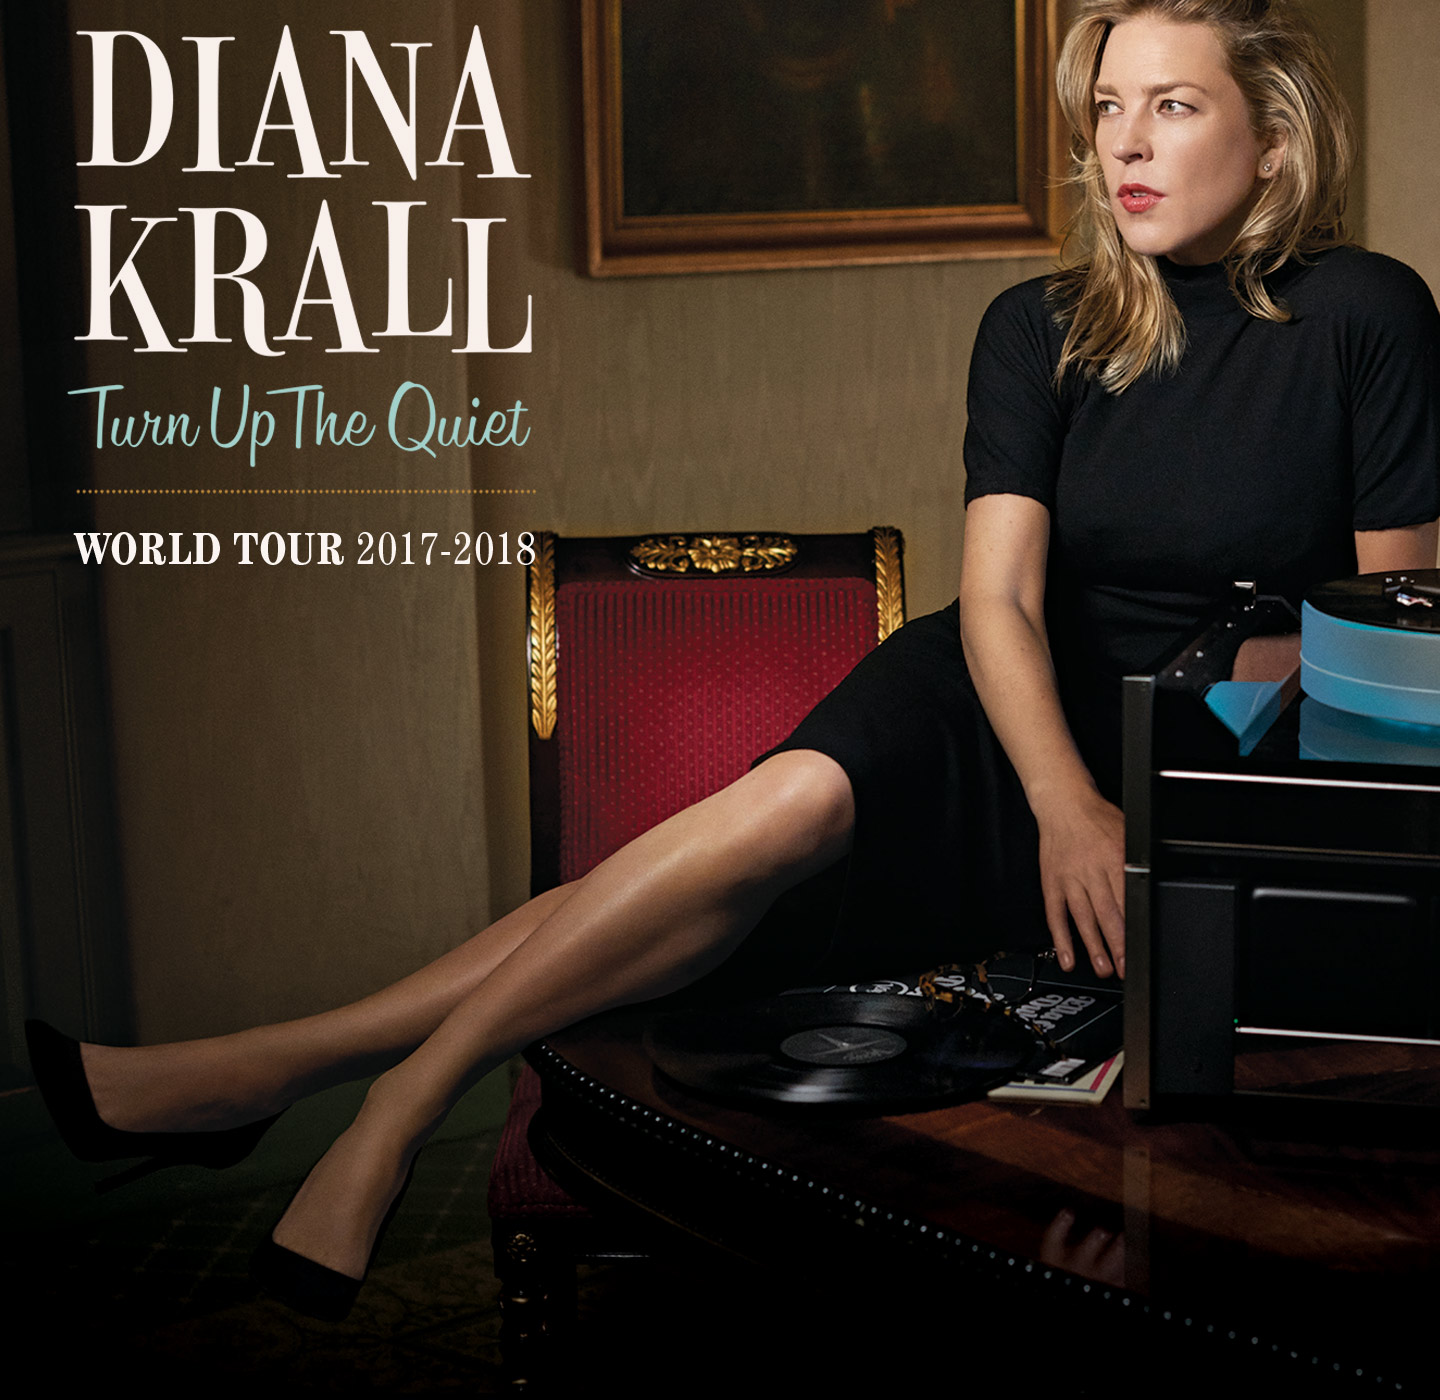 Diana Krall: Turn Up The Quiet World Tour